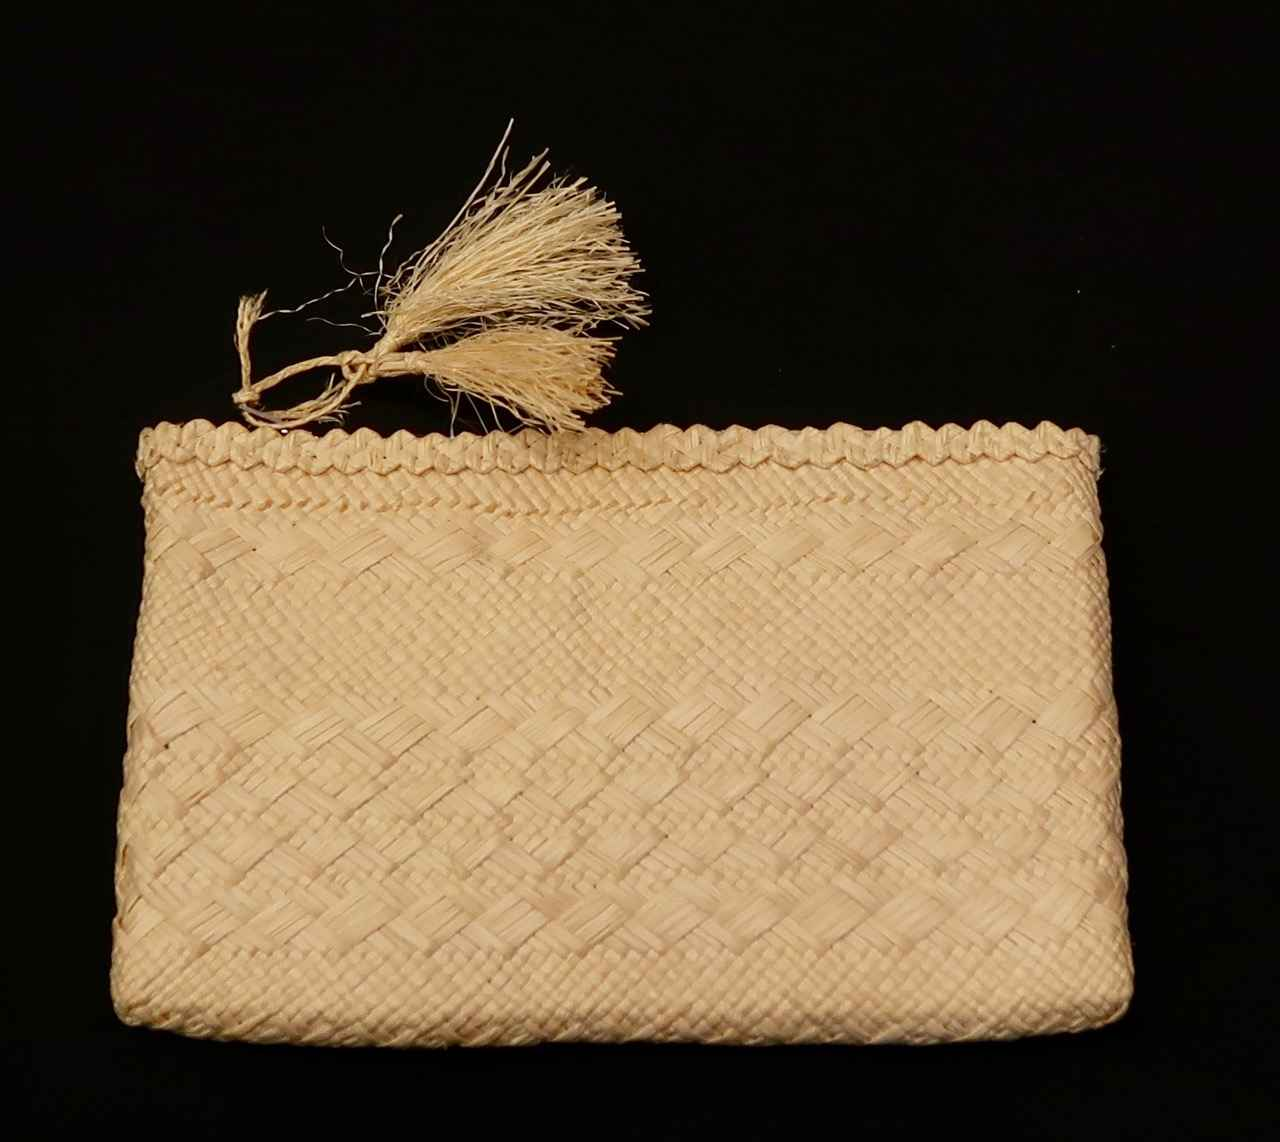 Woven Clutch with Zip... by  Unknown Unknown - Masterpiece Online